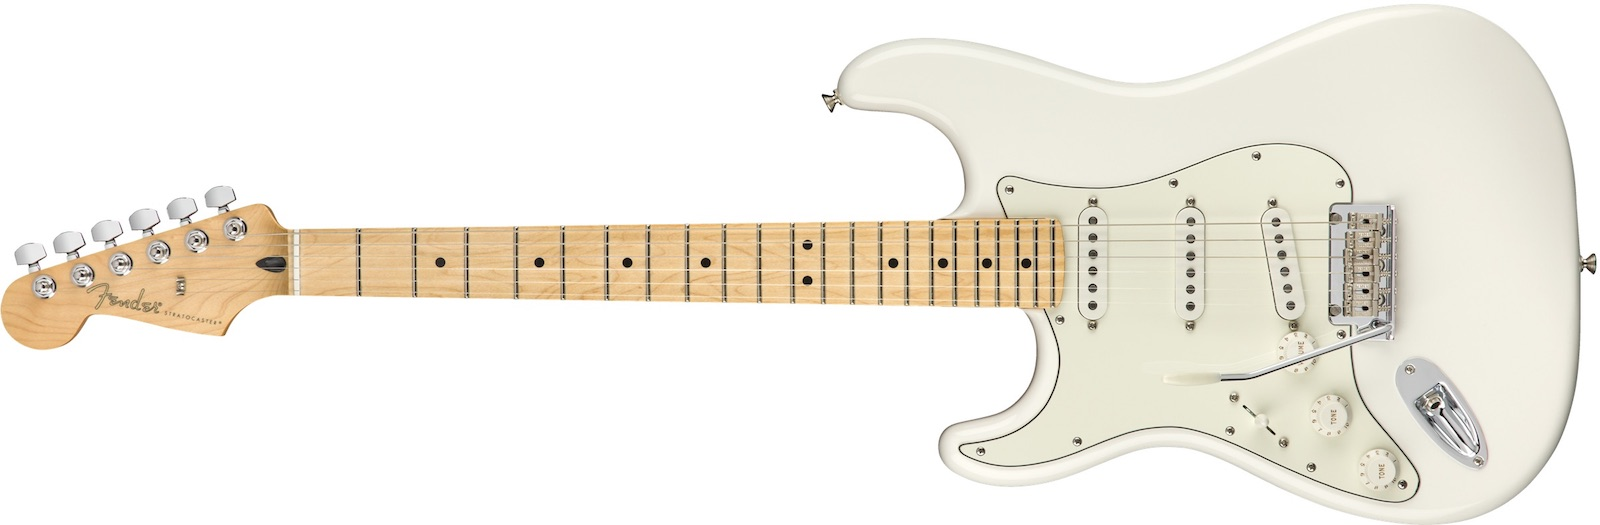 【新品 ~Polar】Fender Player Stratocaster Left-Handed Maple Fingerboard Maple ~Polar White~ Stratocaster【左利き】【お取り寄せ】【送料無料】【池袋店】, surou web shop:959f5665 --- thomas-cortesi.com